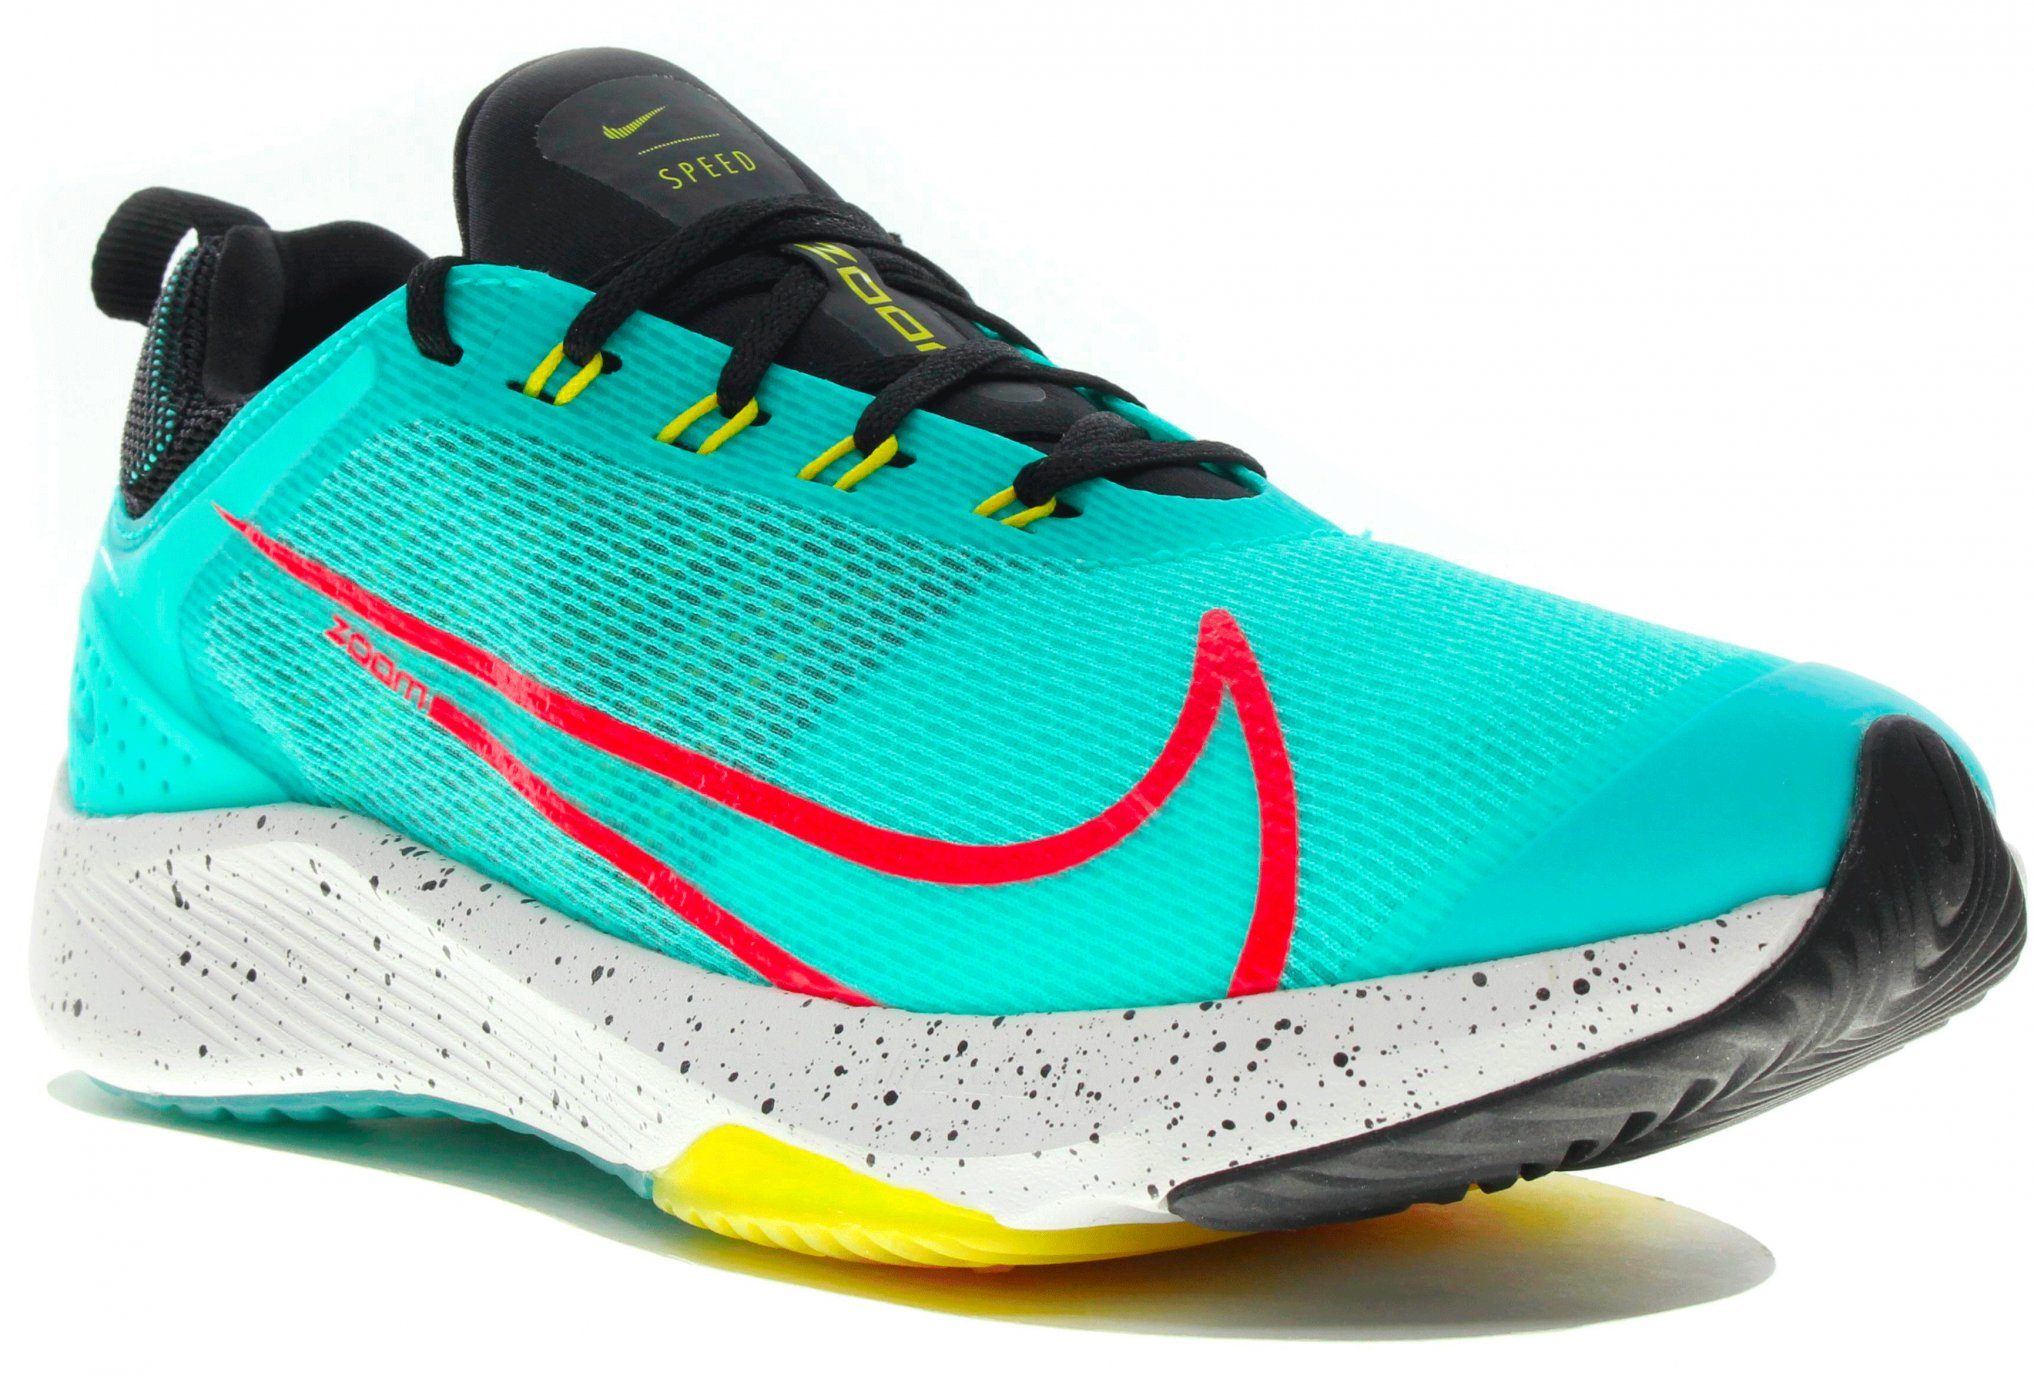 Nike Air Zoom Speed Fille Chaussures running femme